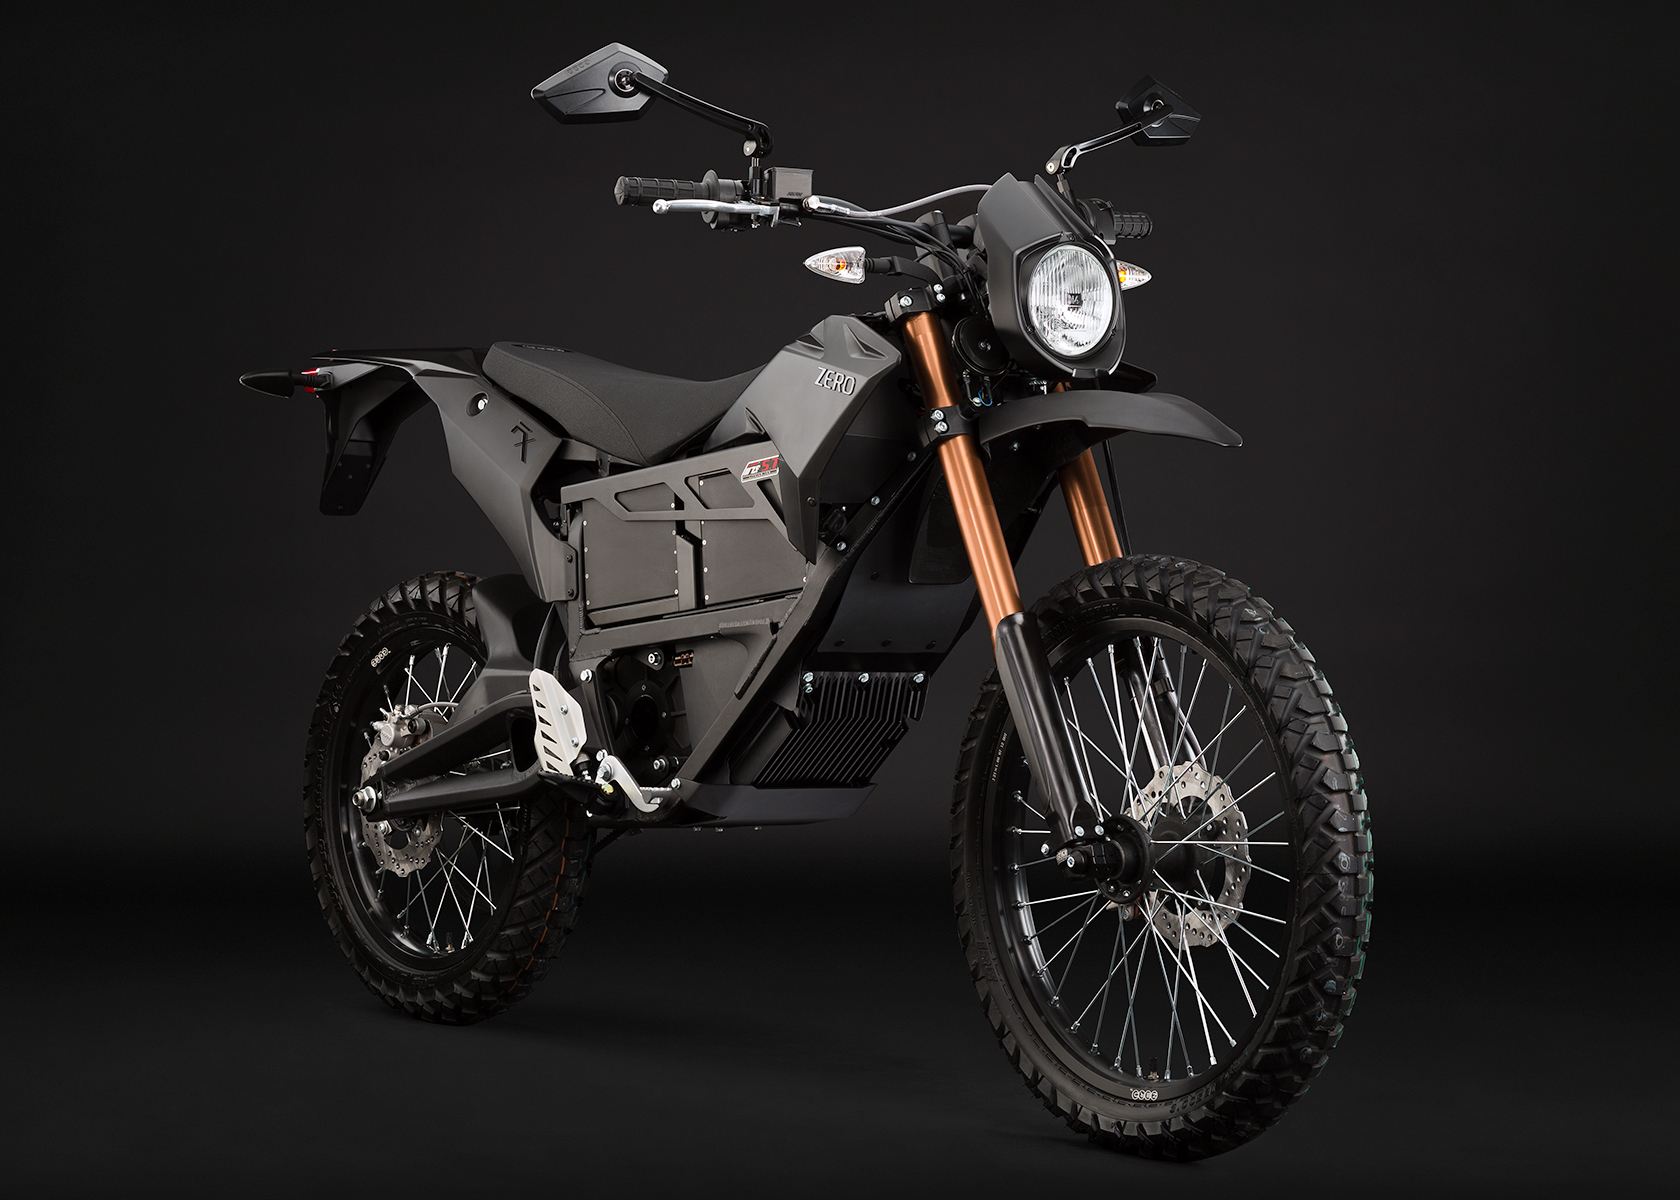 2013 Zero FX Electric Motorcycle: Black Angle Right